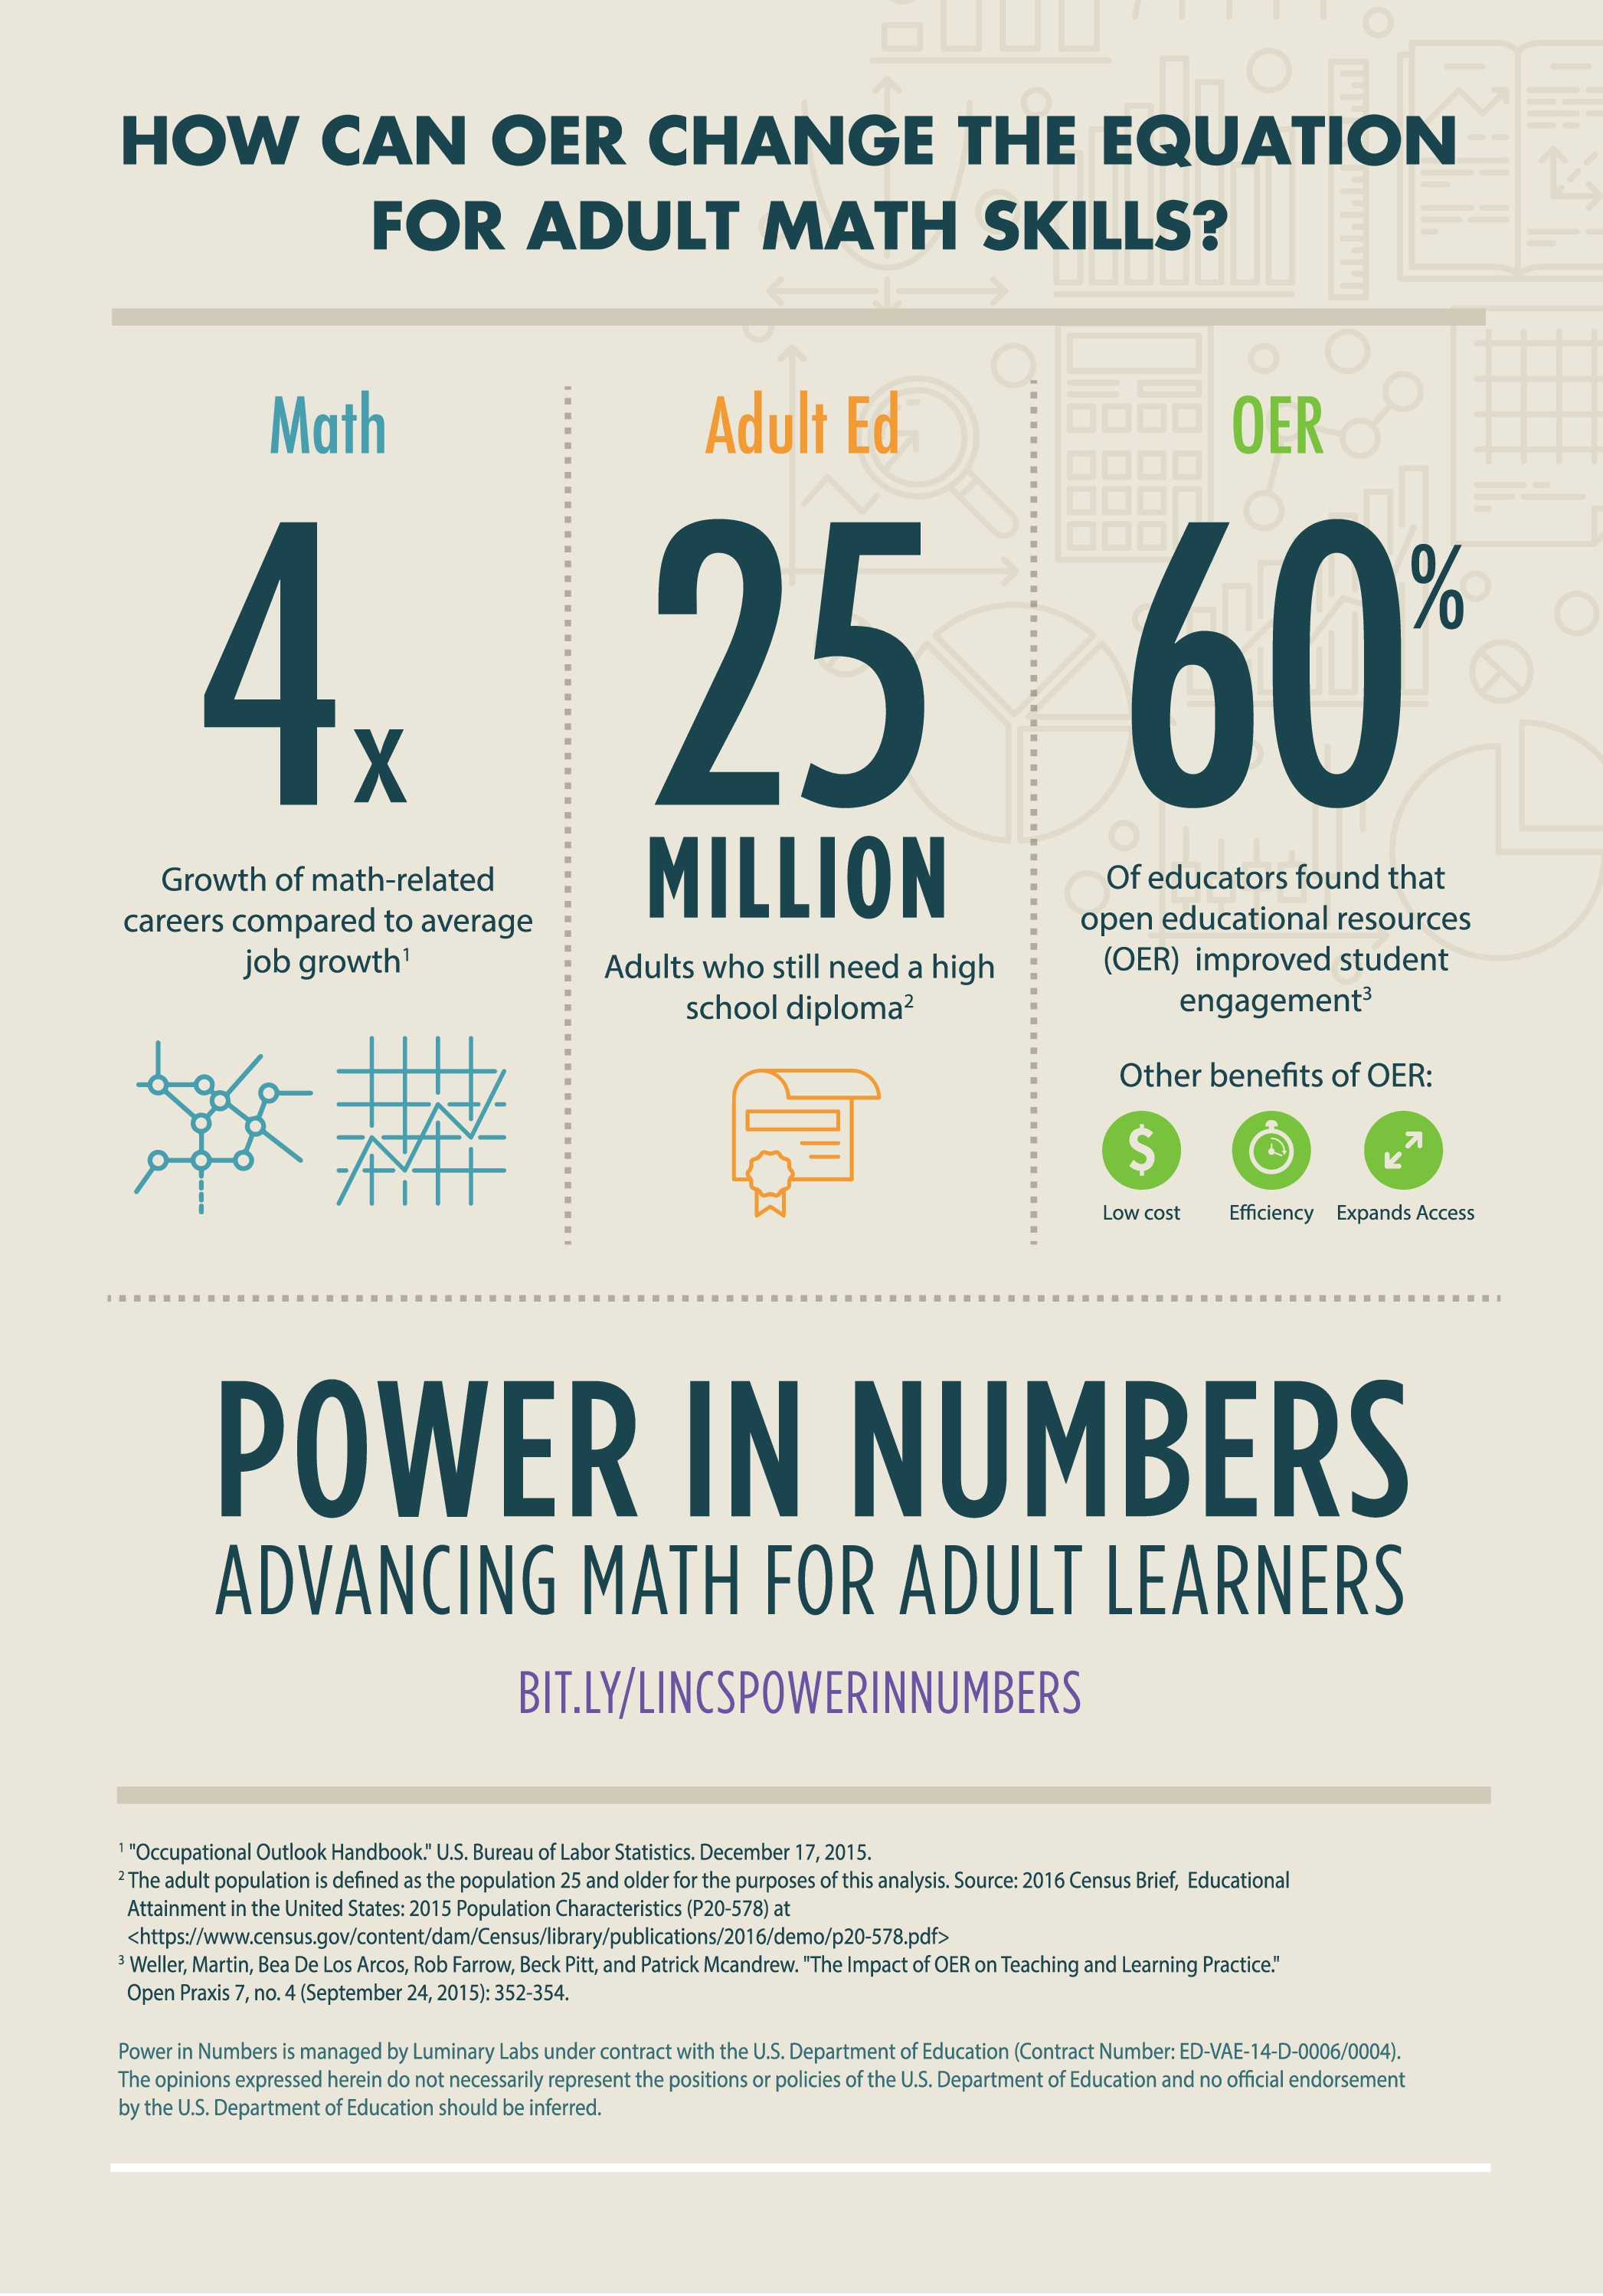 "How can OER change the equation for adult math skills? The growth rate of math-related jobs is four times that of average job growth (see footnote 1 for source). Meanwhile, there are 25 million adults in the United States who still need a high school diploma (see footnote 2 for source). Additionally, 60% of educators in a recent study found that open educational resources (OER) improved student engagement (see footnote 3 for source). Further benefits of OER include low cost, efficiency, and expanded access. Visit the homepage for Power in Numbers: Advancing Math for Adult Learners at bit.ly/lincspowerinnumbers. Footnote 1: ""Occupational Outlook Handbook."" U.S. Bureau of Labor Statistics. December 27, 2015. Footnote 2: The adult population is defined as the population 25 and older for the purposes of this analysis. Source: 2016 Census Brief, Educational Attainment in the United States: 2015 Population Characteristics (P20- 578) at Footnote 3: Weller, Martin, Bea De Los Arcos, Rob Farrow, Beck Pitt, and Patrick Mcandrew. ""The Impact of OER on Teaching and Learning Practice."" Open Praxis 7, no. 4 (September 24, 2015): 352-354. Disclaimer: Power in Numbers is managed by Luminary Labs under contract with the U.S. Department of Education (Contract Number: ED-VAE-14-D-0006/0004). The opinions expressed herein do not necessarily represent the positions or policies of the U.S. Department of Education and no official endorsement by the U.S. Department of Education should be inferred."